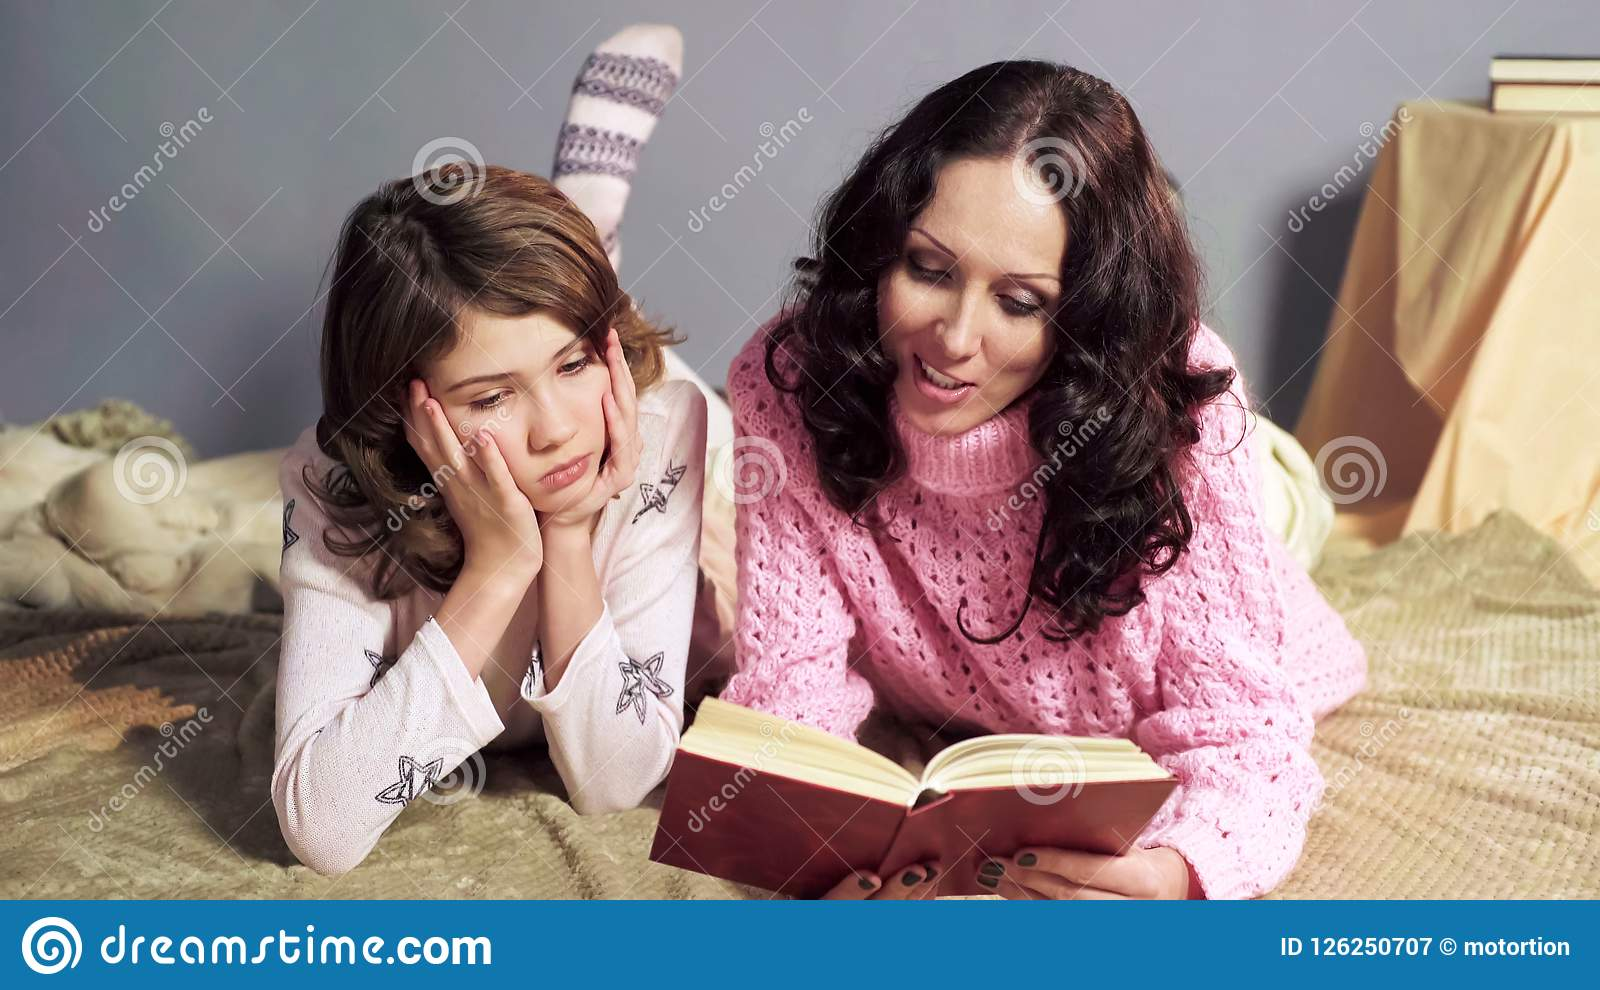 Girl bored with storybook her mother reading before bedtime, togetherness